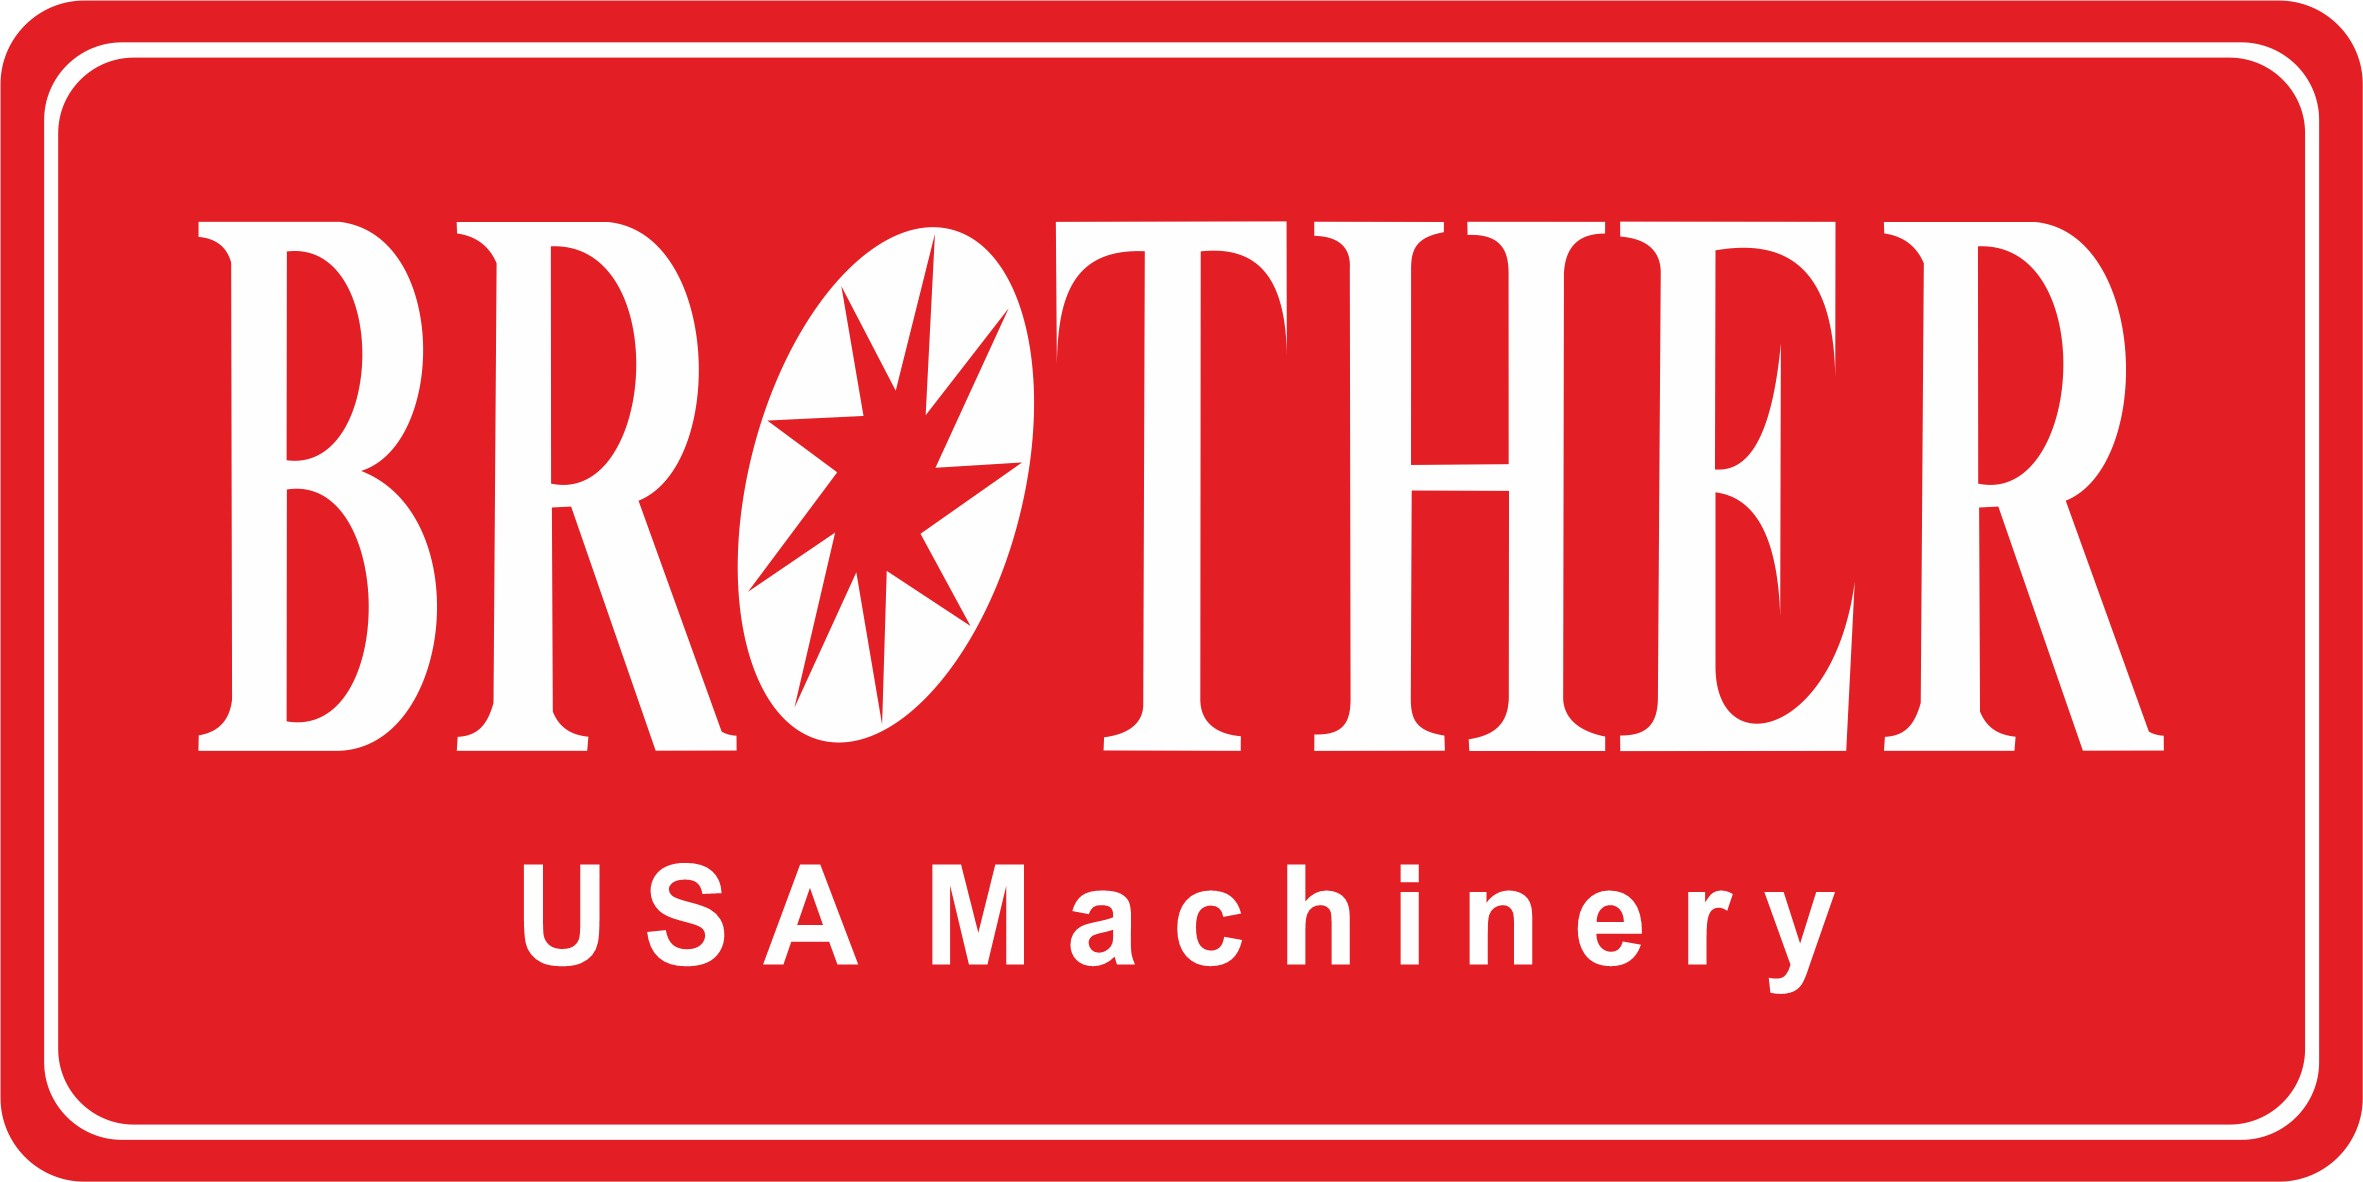 USABrother | Integral Packing Solutions | Quality, Service & Warranty